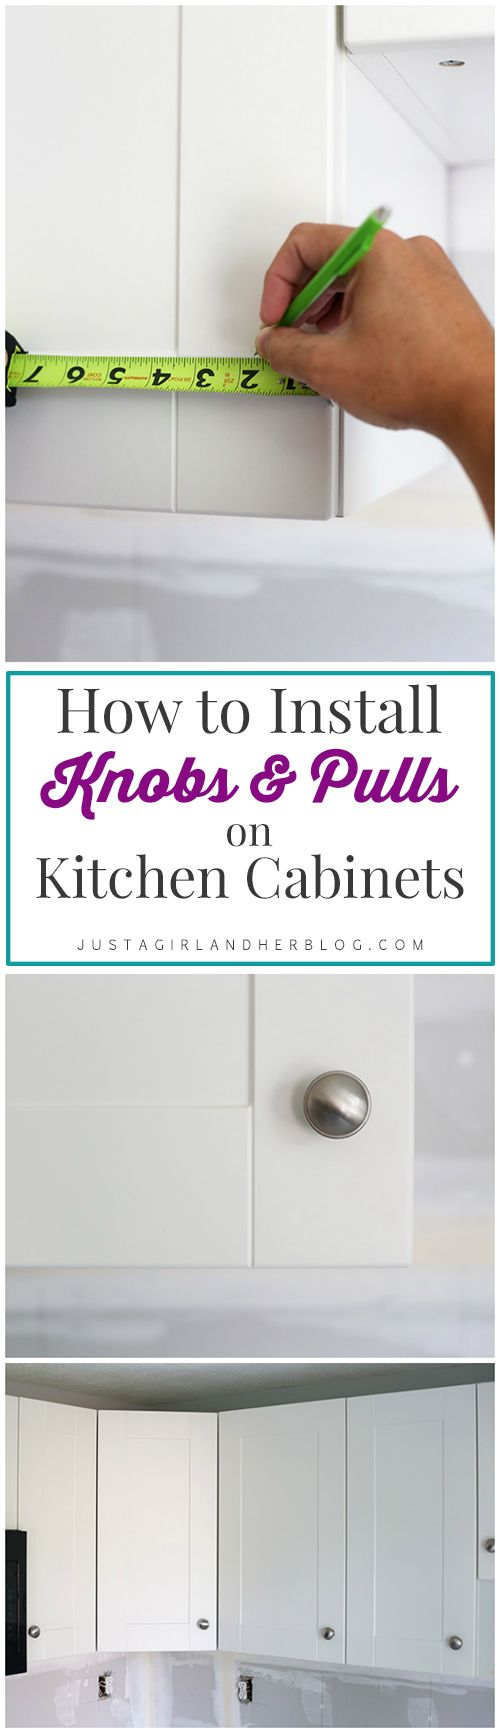 Easy explanation of how to install knobs & pulls and how to know where to put them! | JustAGirlAndHerBlog.com